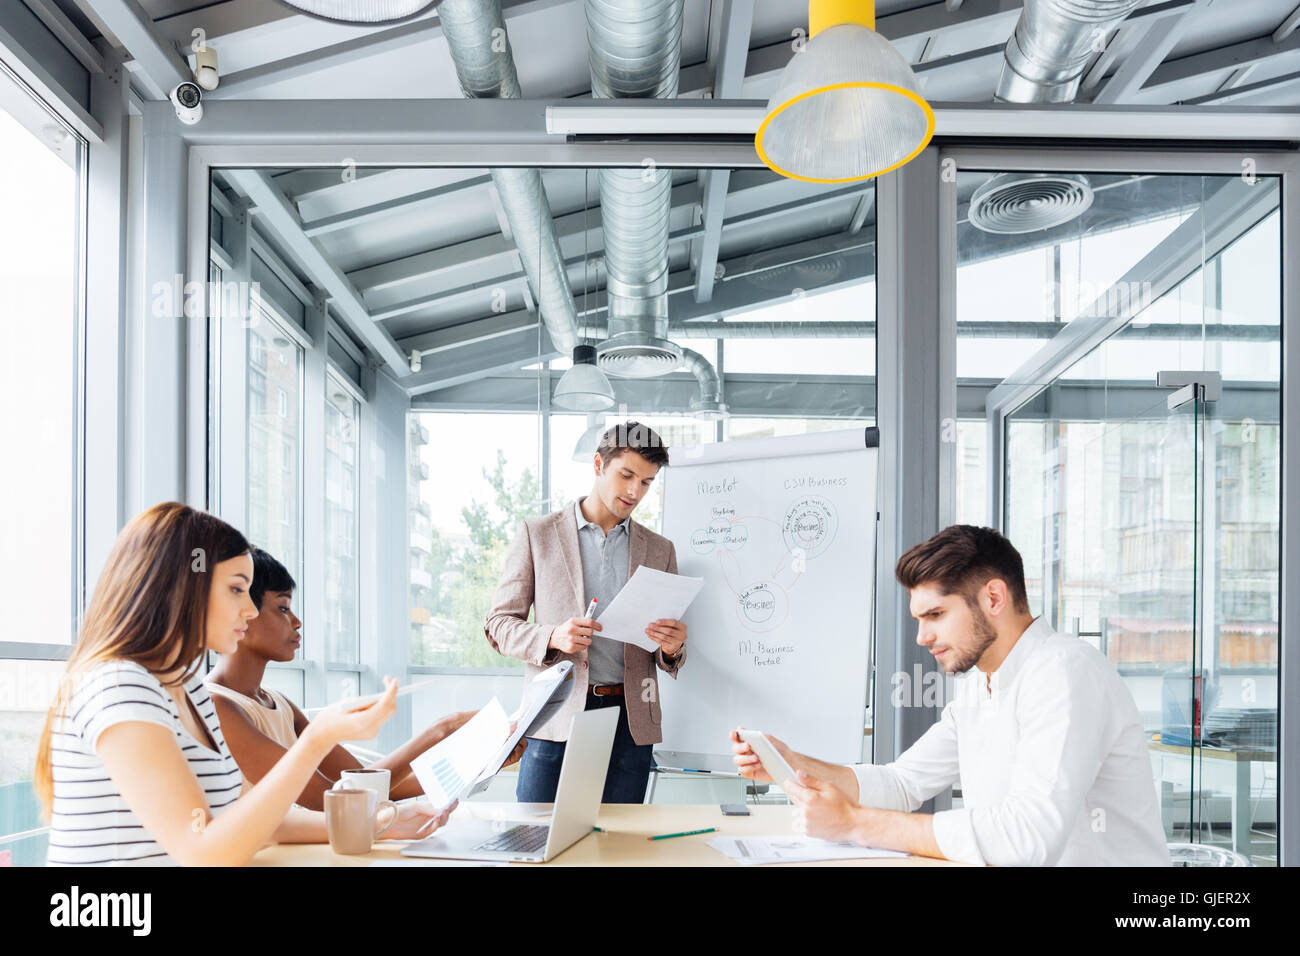 Concentrated young businessman giving presentation and reading documents in office - Stock Image